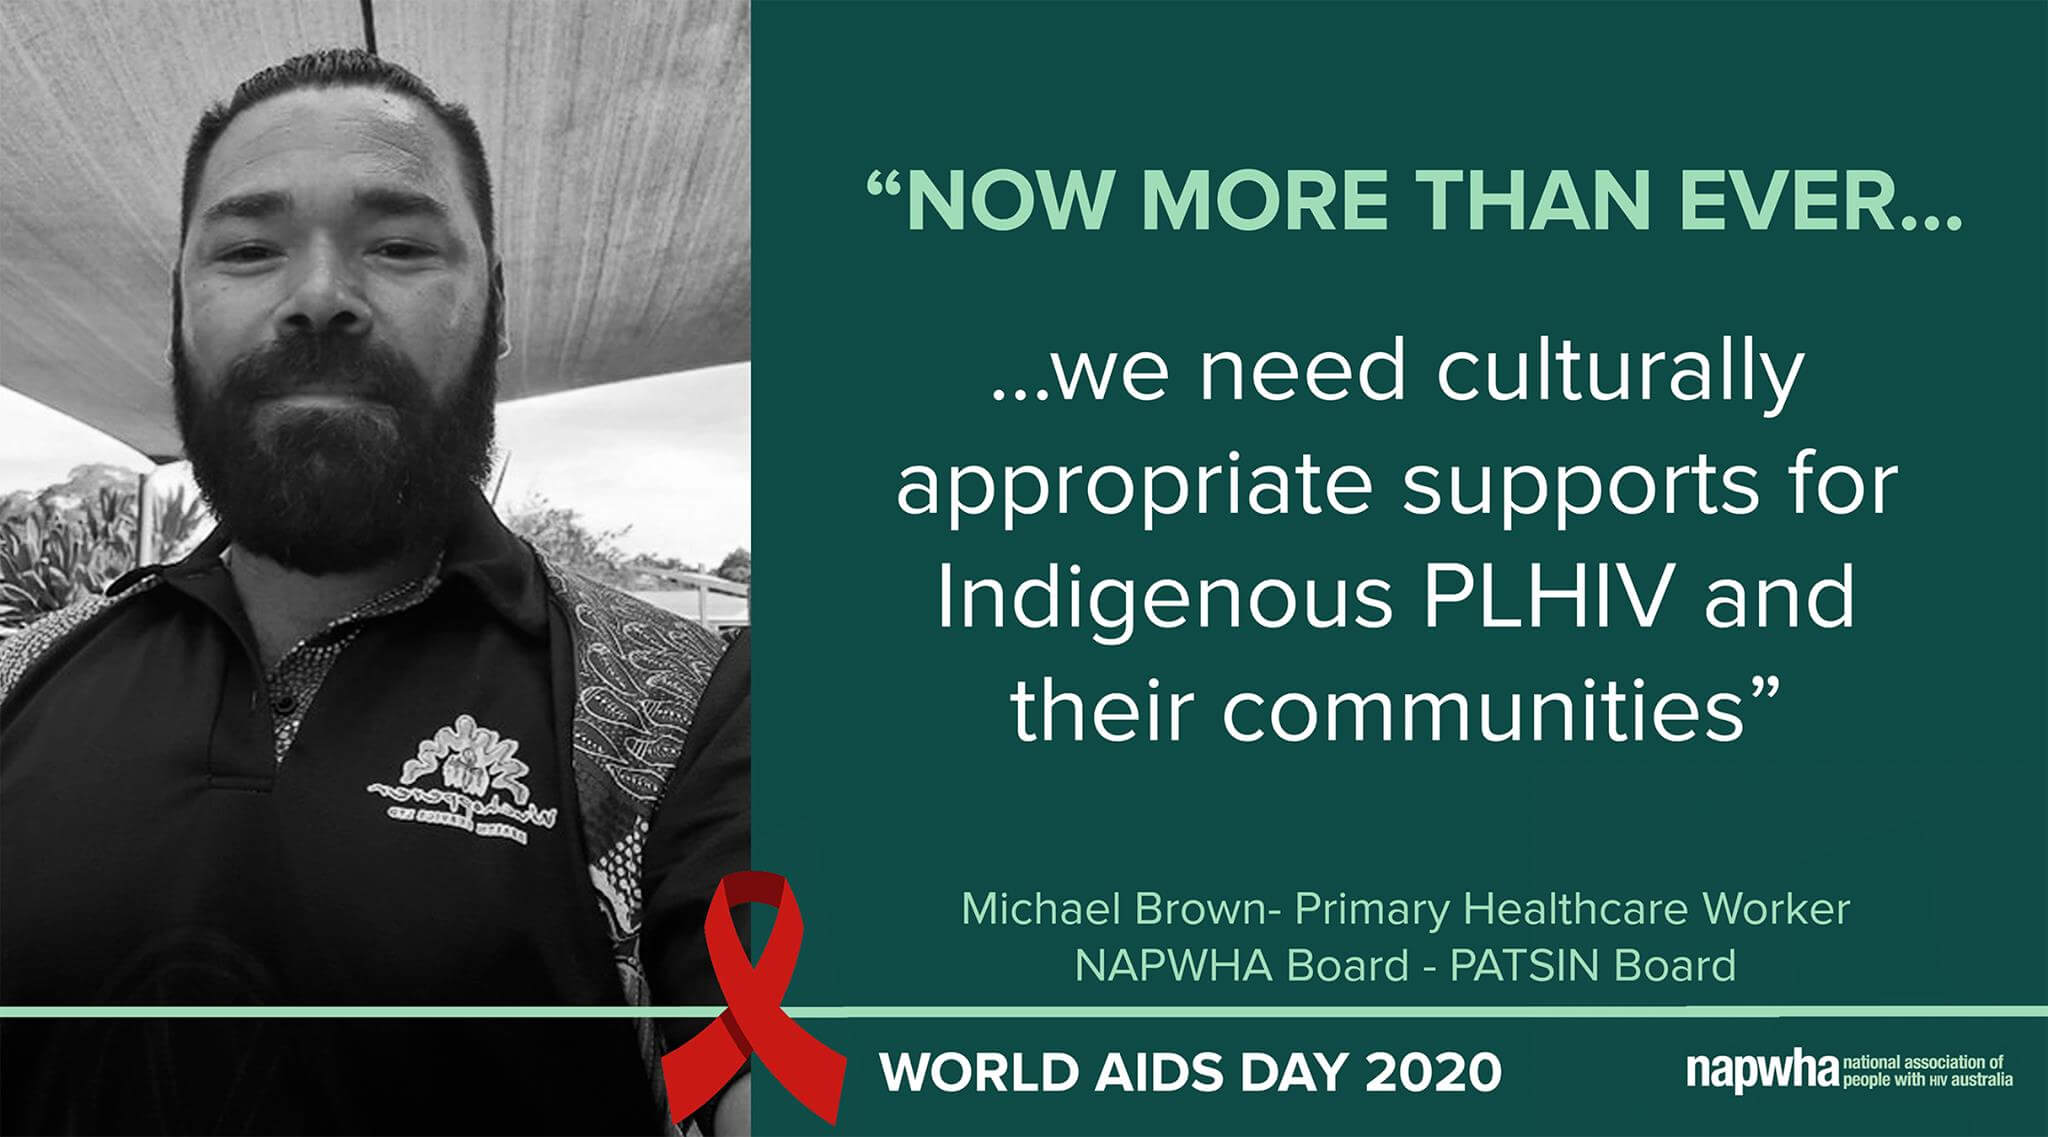 Michael Brown, Primary Healthcare worker and NAPWHA Board and PATSIN Board member provides a World AIDS Day 2020 message